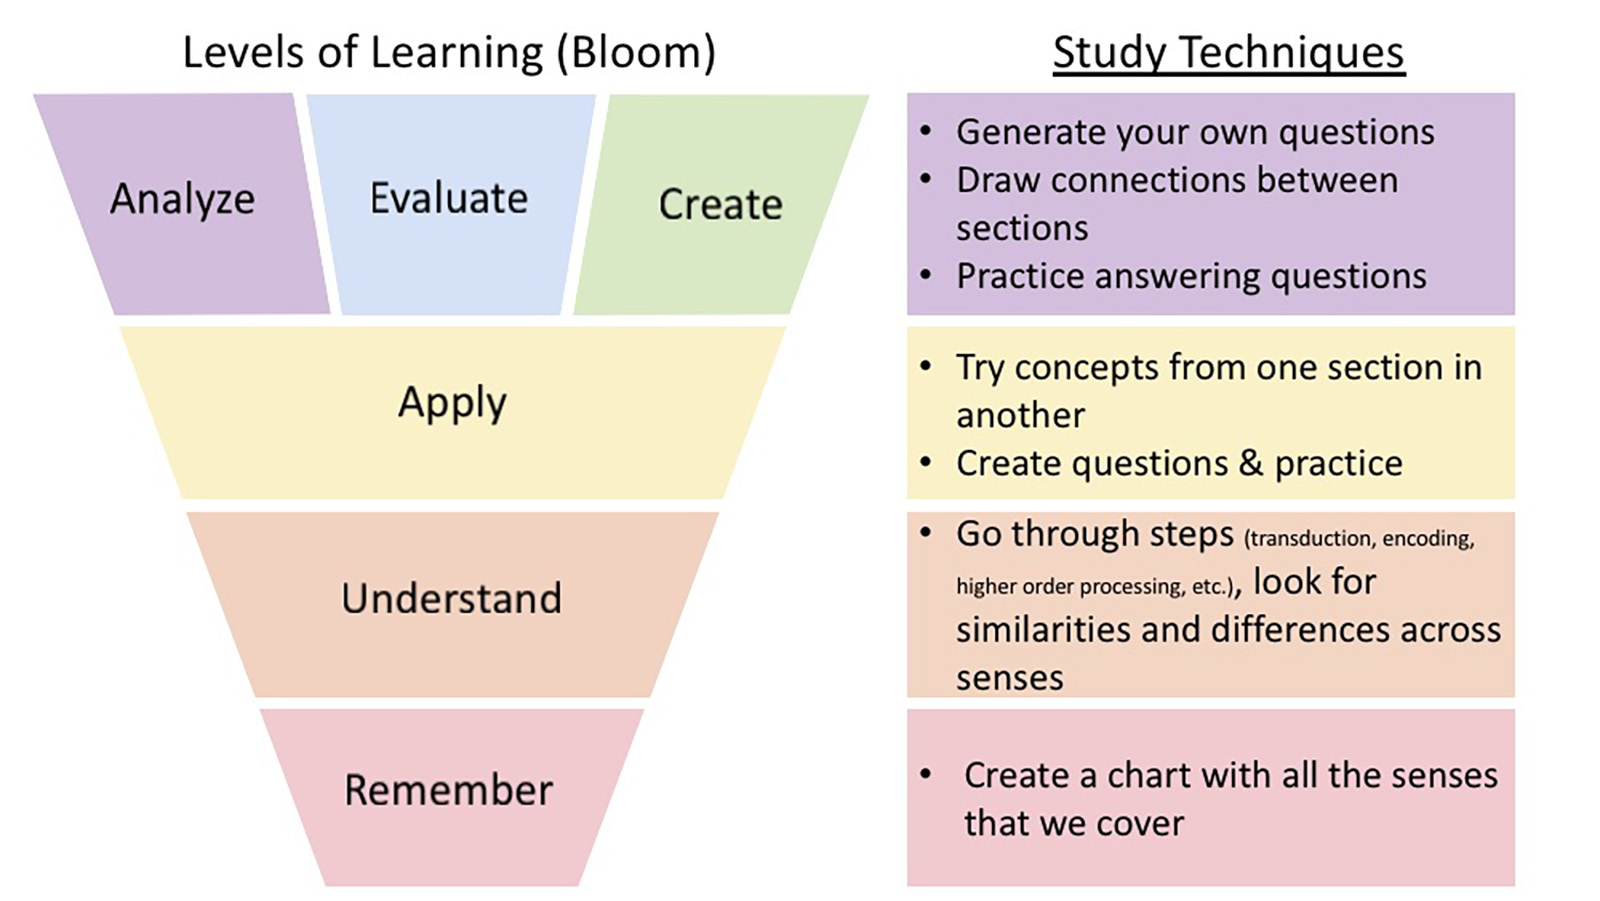 Levels of learning mapped to study techniques